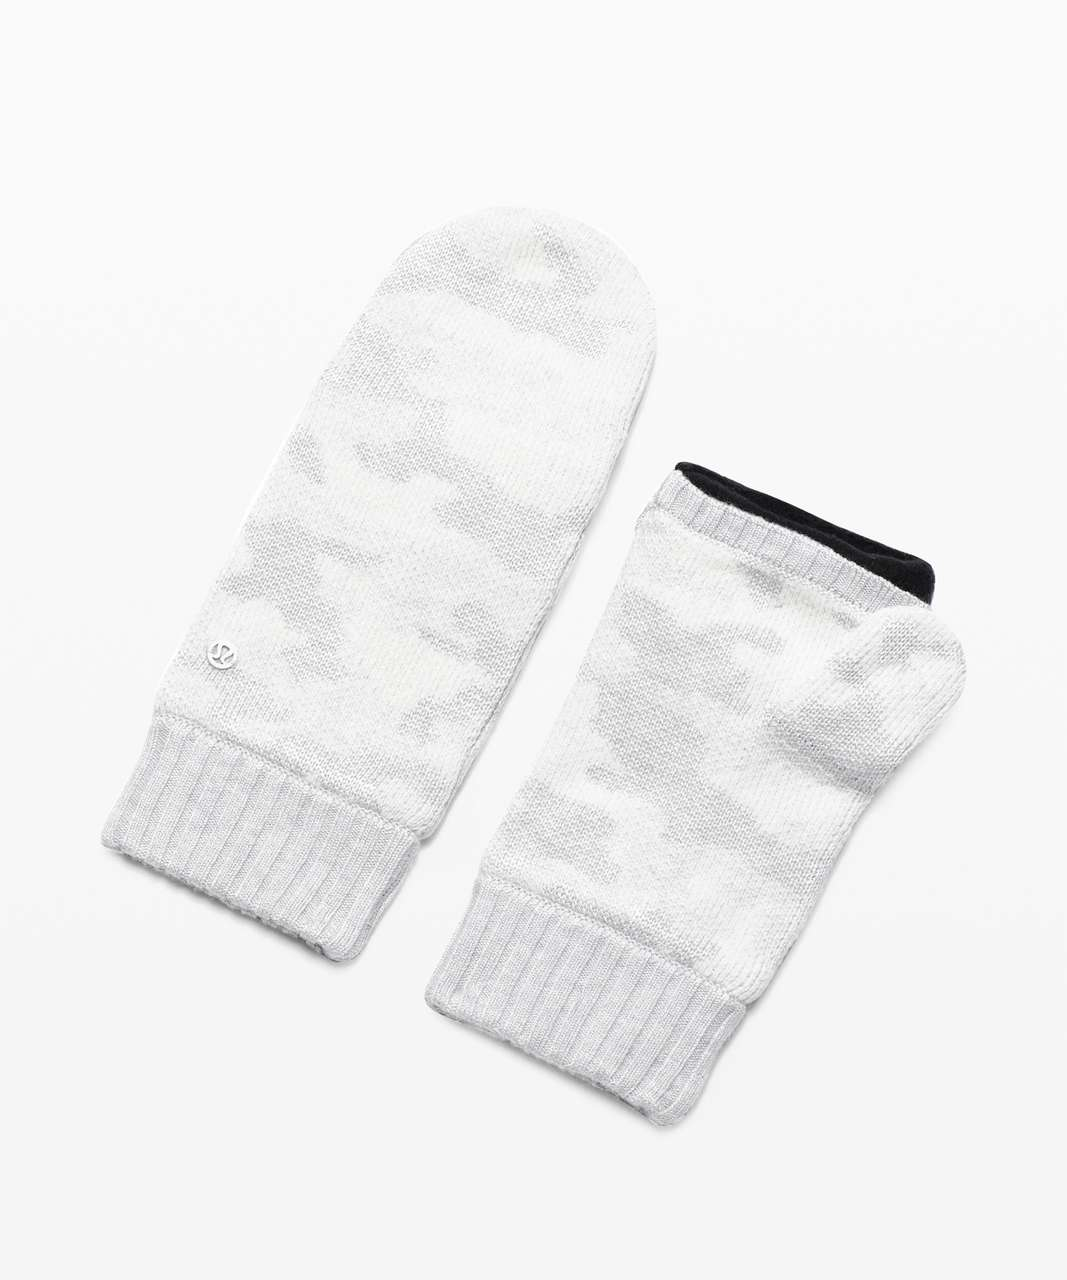 Lululemon Room for Warmth Mitten - Heathered Core Ultra Light Grey / Antique White